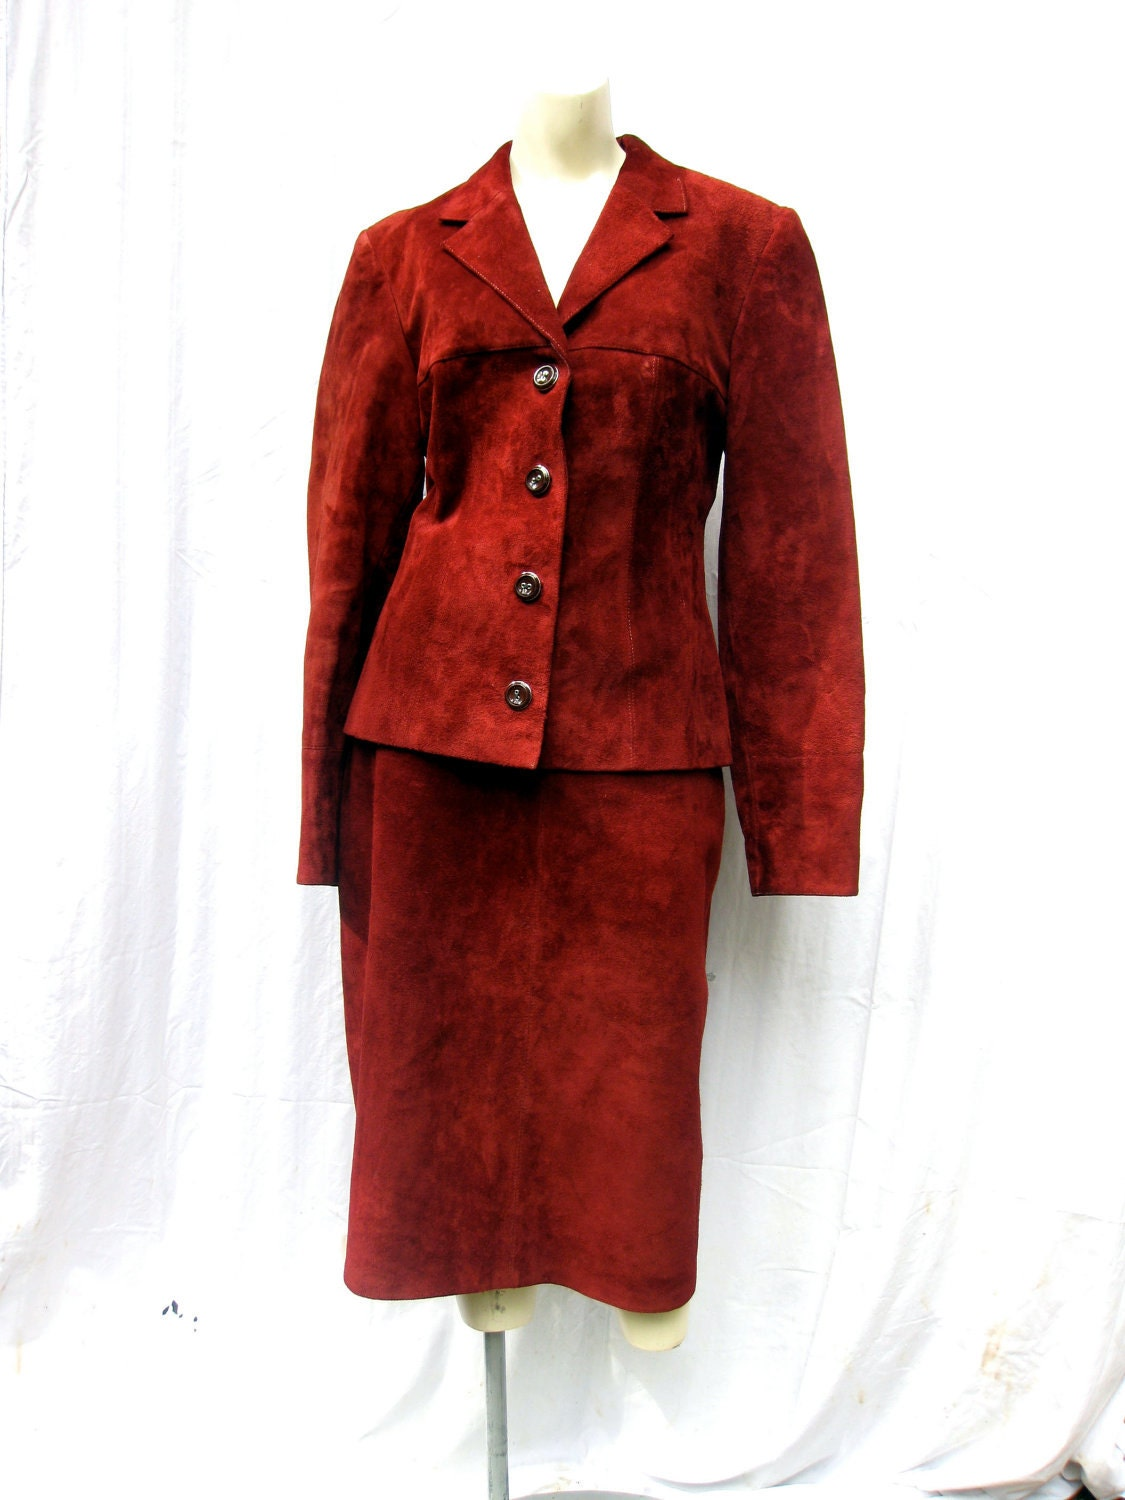 items similar to 1970s suede leather skirt suit on etsy